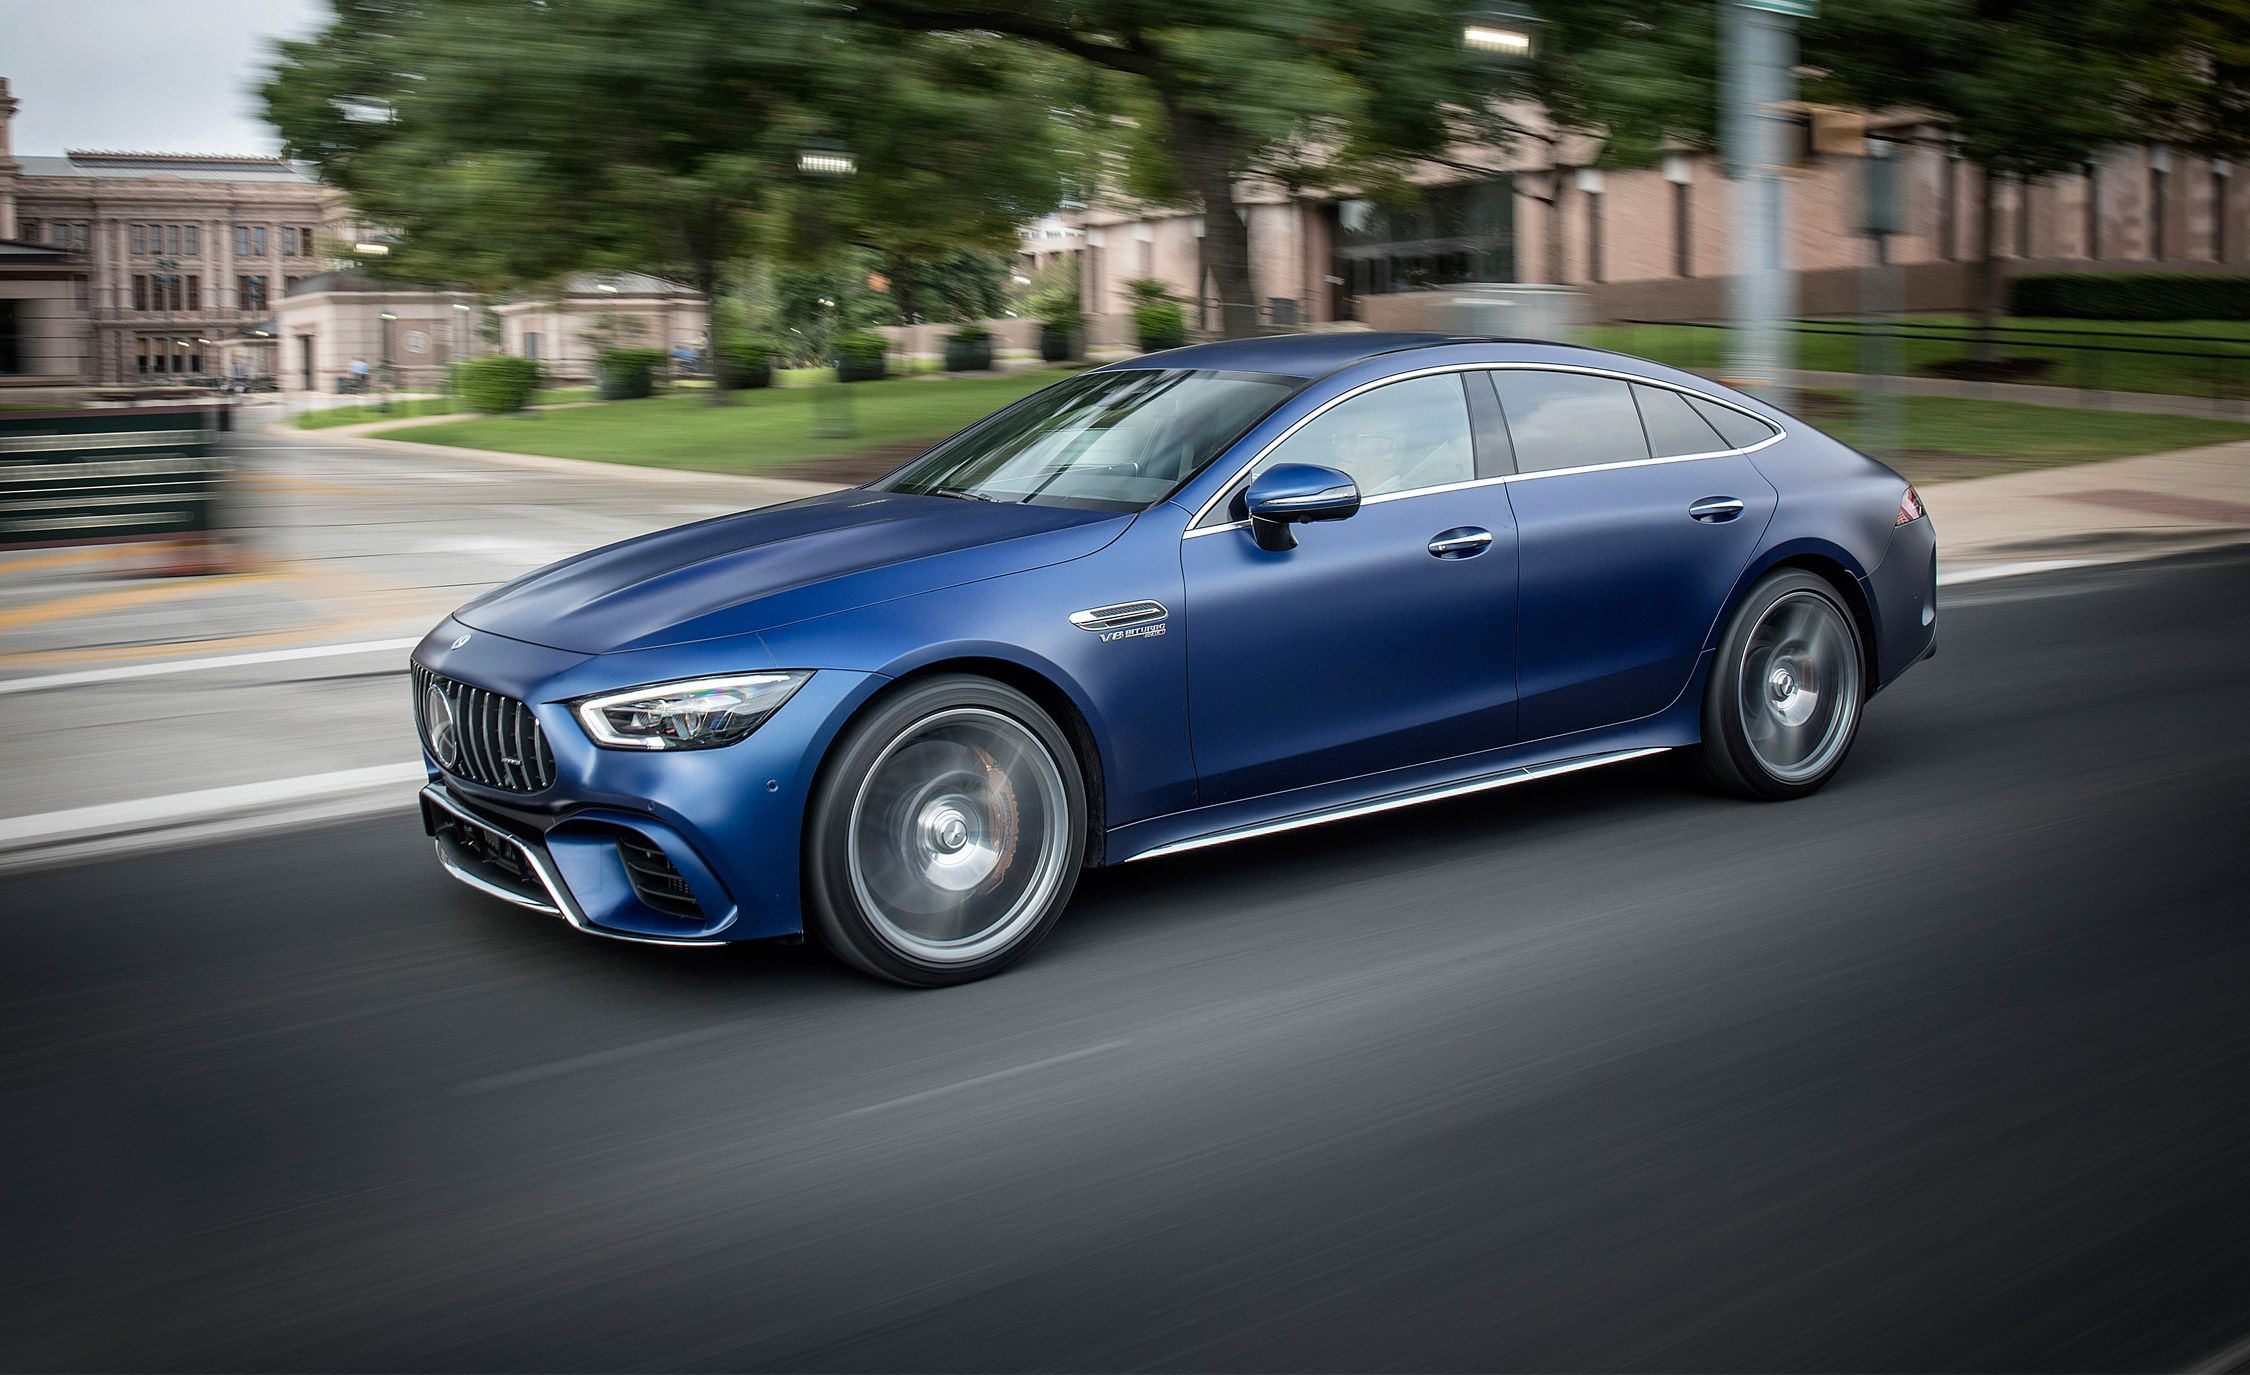 2019 Mercedes Amg Gt 4 Door Is One Furiously Fast Sedan